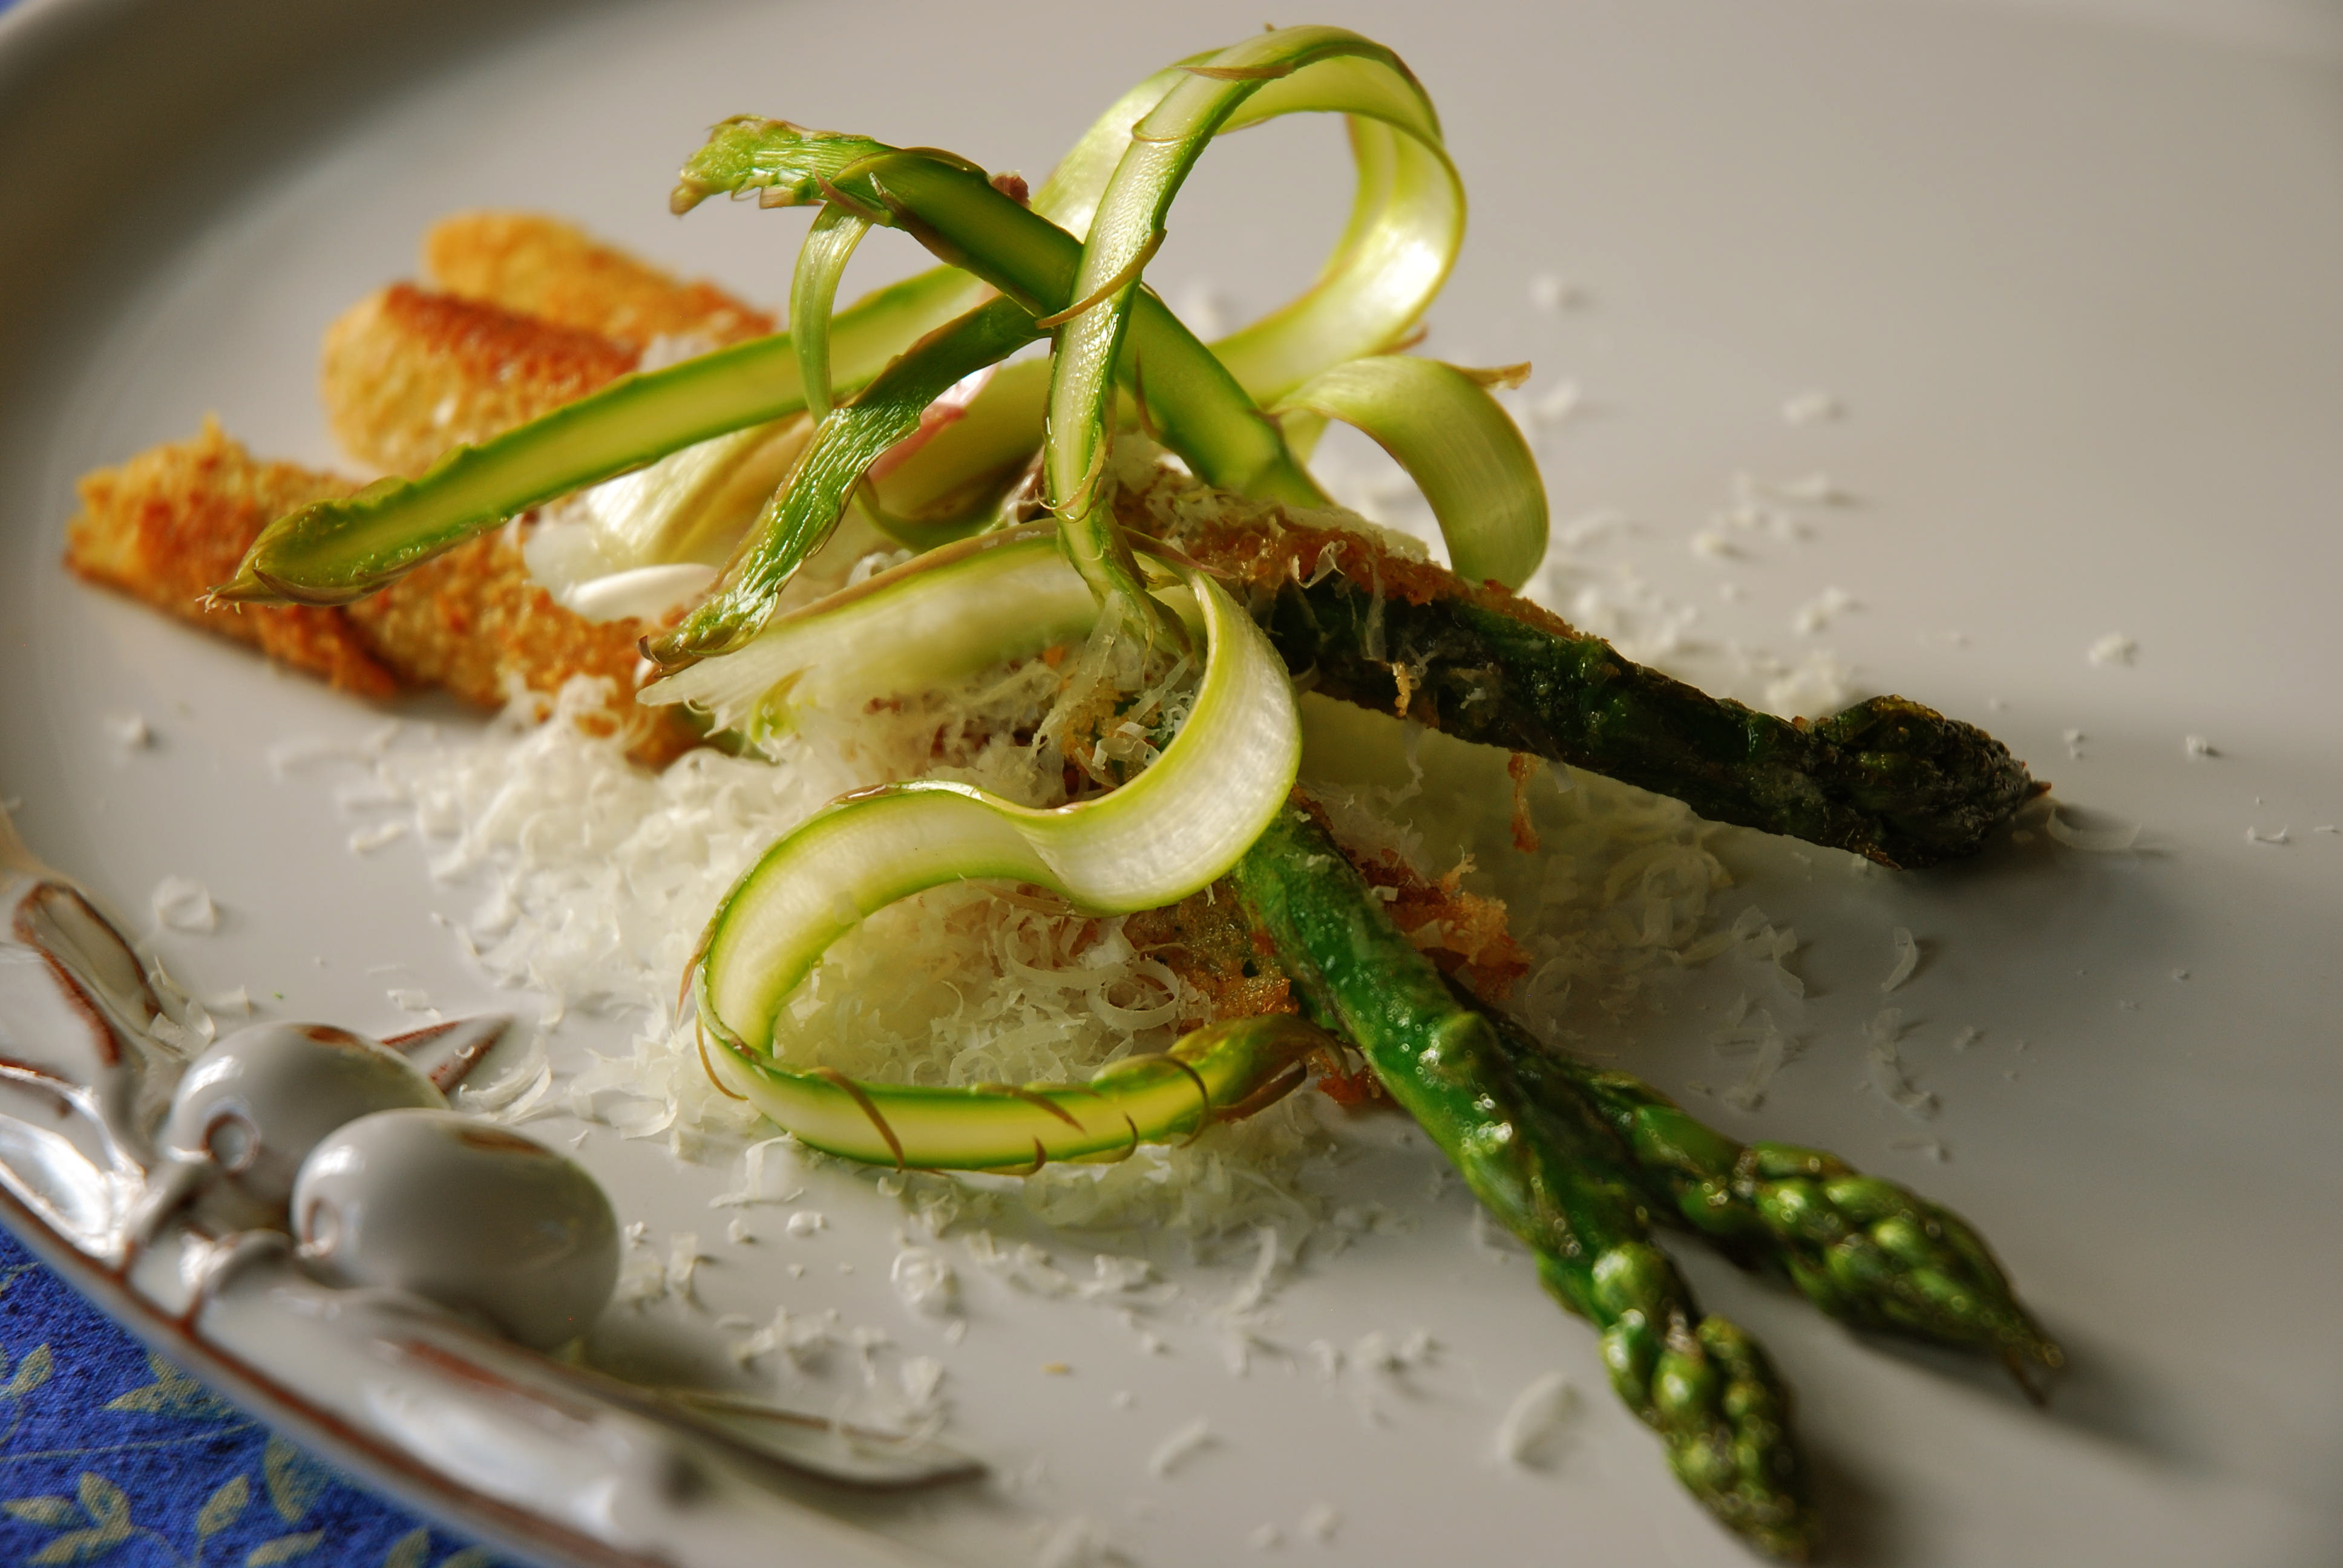 Pan Fried Asparagus with Parmesan, and Asparagus Ribbons